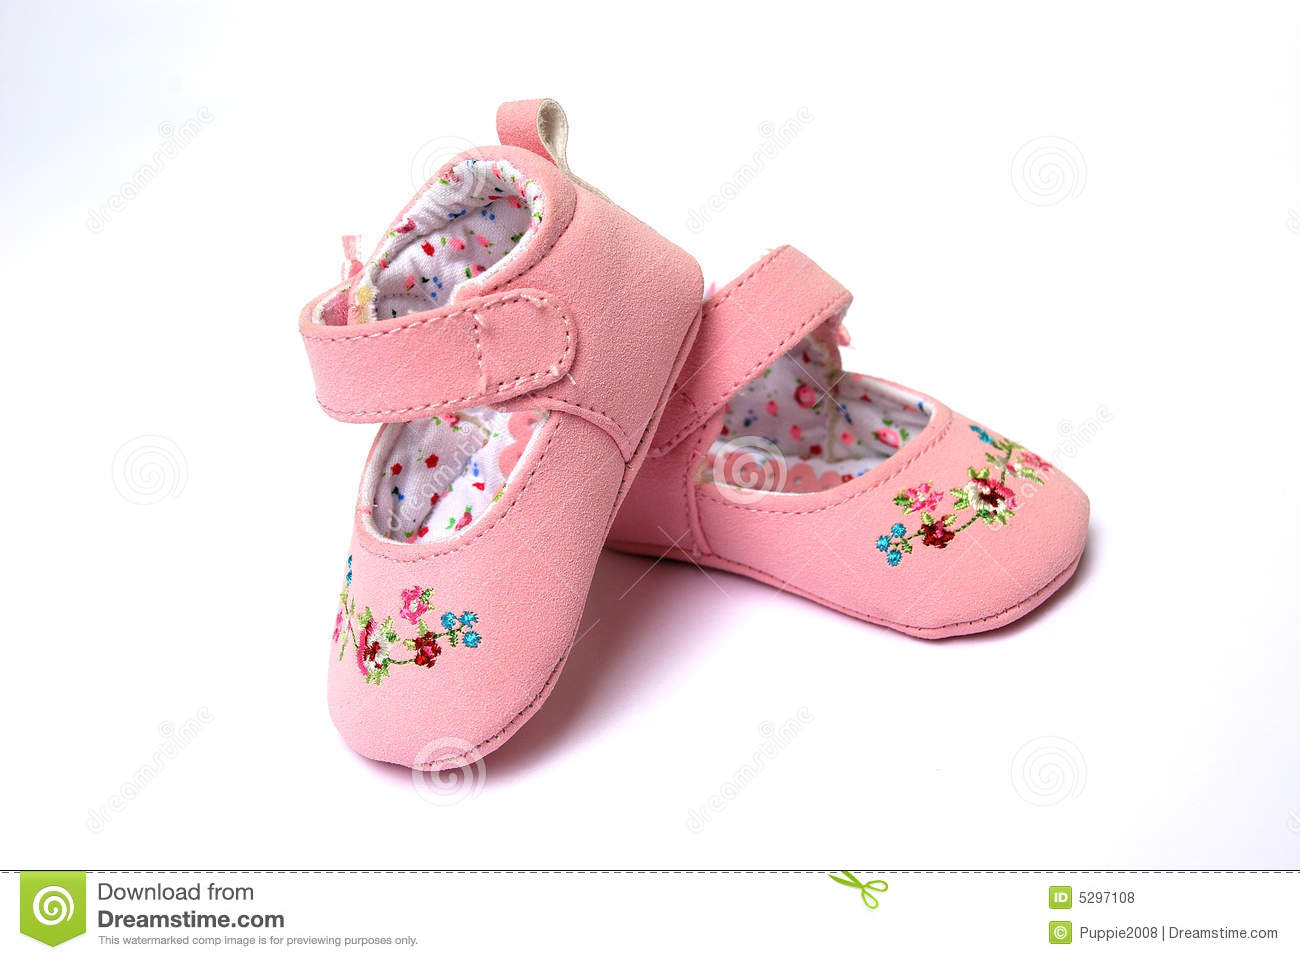 Pink Girl Shoes. Clothing. Shoes. Kids & Baby Shoes. Pink Girl Shoes. Showing 48 of results that match your query. Product - Robeez Newborn Baby Girls Pink Baby Shoes Owlivia Soft Sole Shoes Crib Shoes Infant Months Pre-Walkers First Walking Suede Bottom Shoes for Baby Girls.